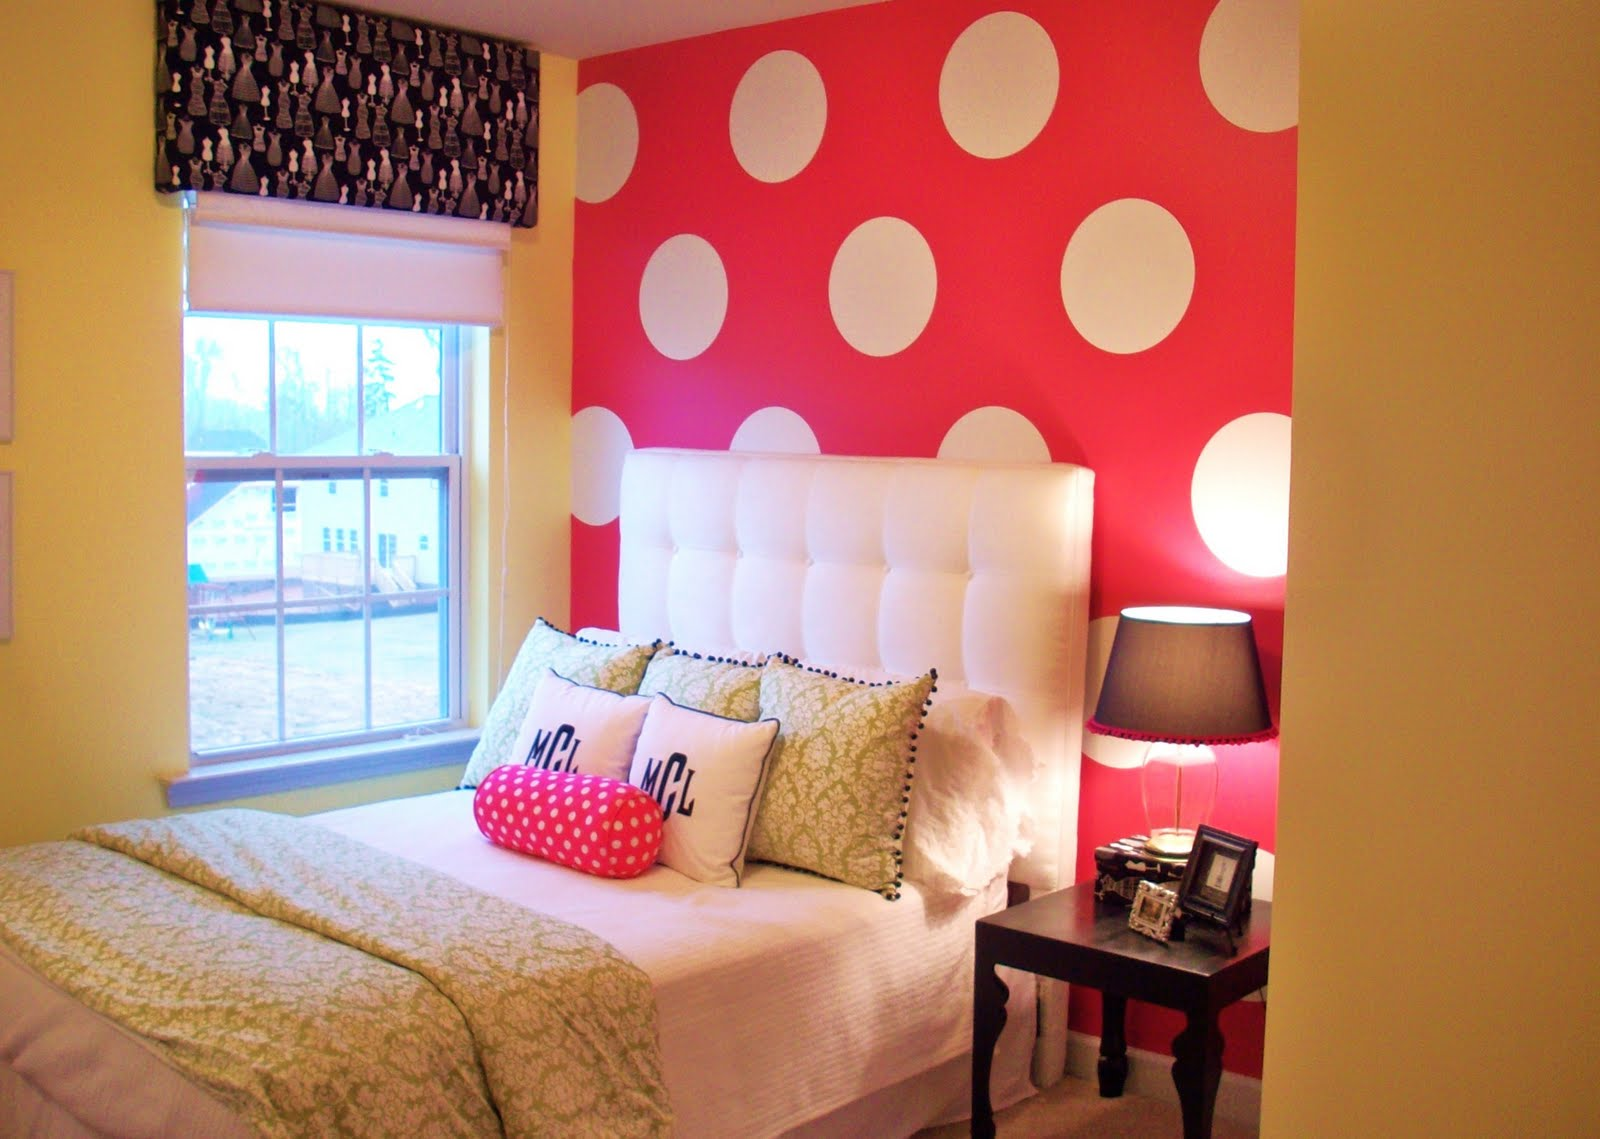 Bedroom ideas pink bedroom girly bedroom girl bedroom cute room teen